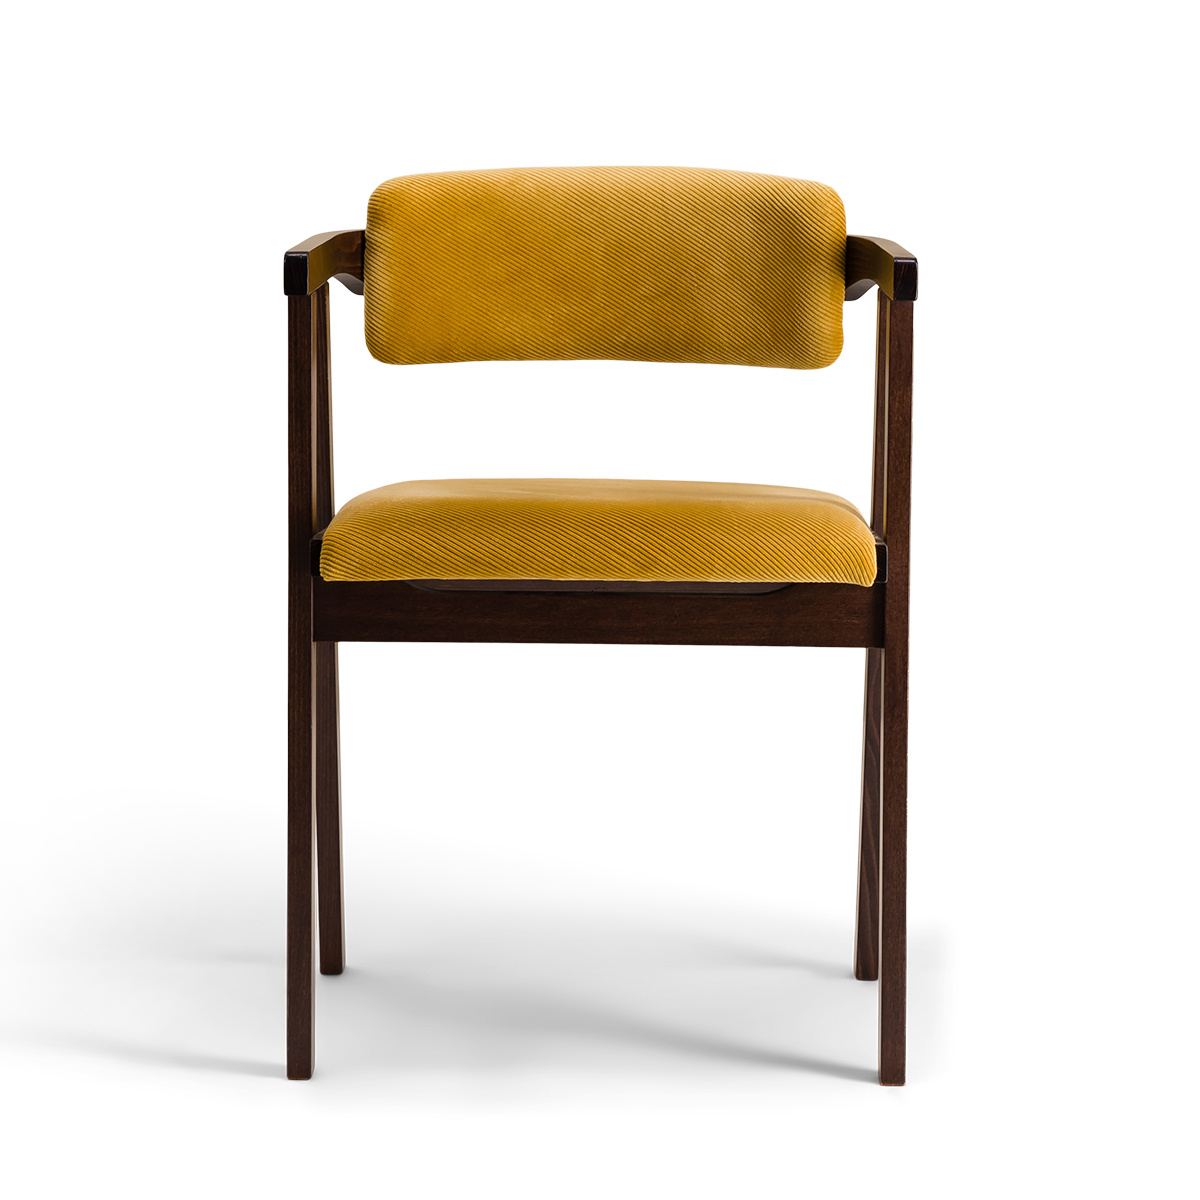 Milano Chair with Brown Wood and Mustard Corduroy